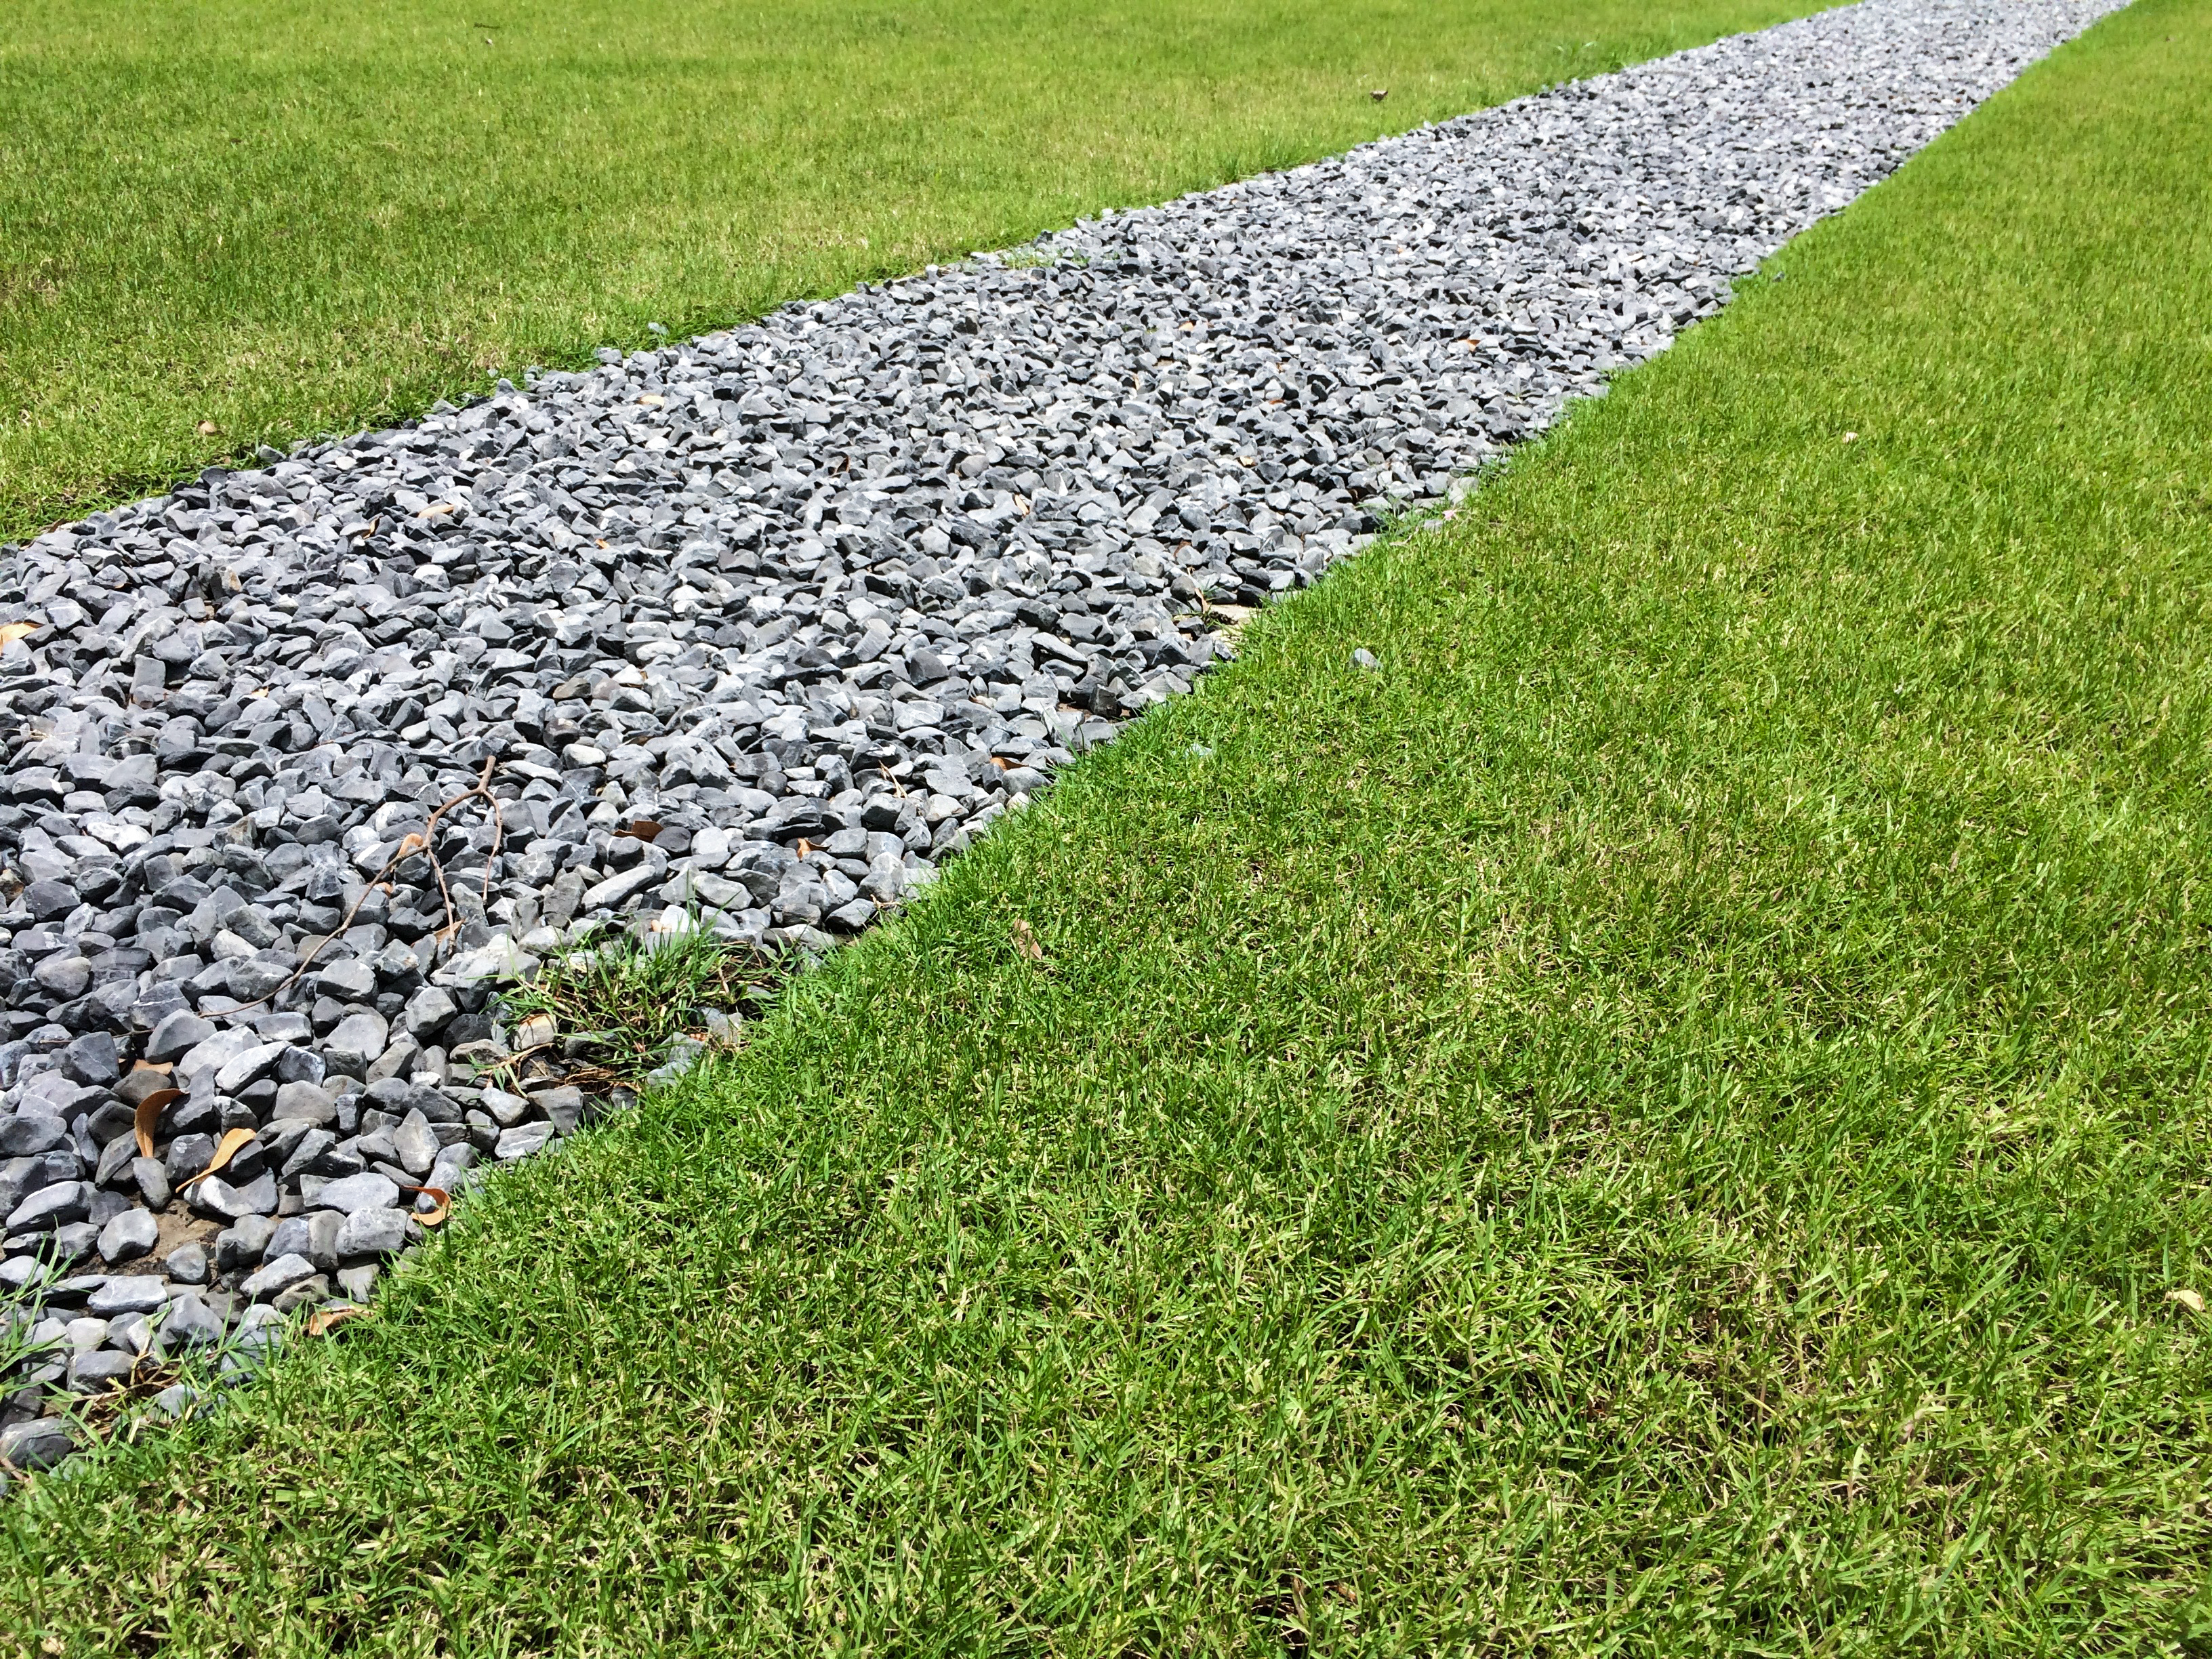 How to Kill Grass in a Gravel Driveway | Home Guides | SF Gate